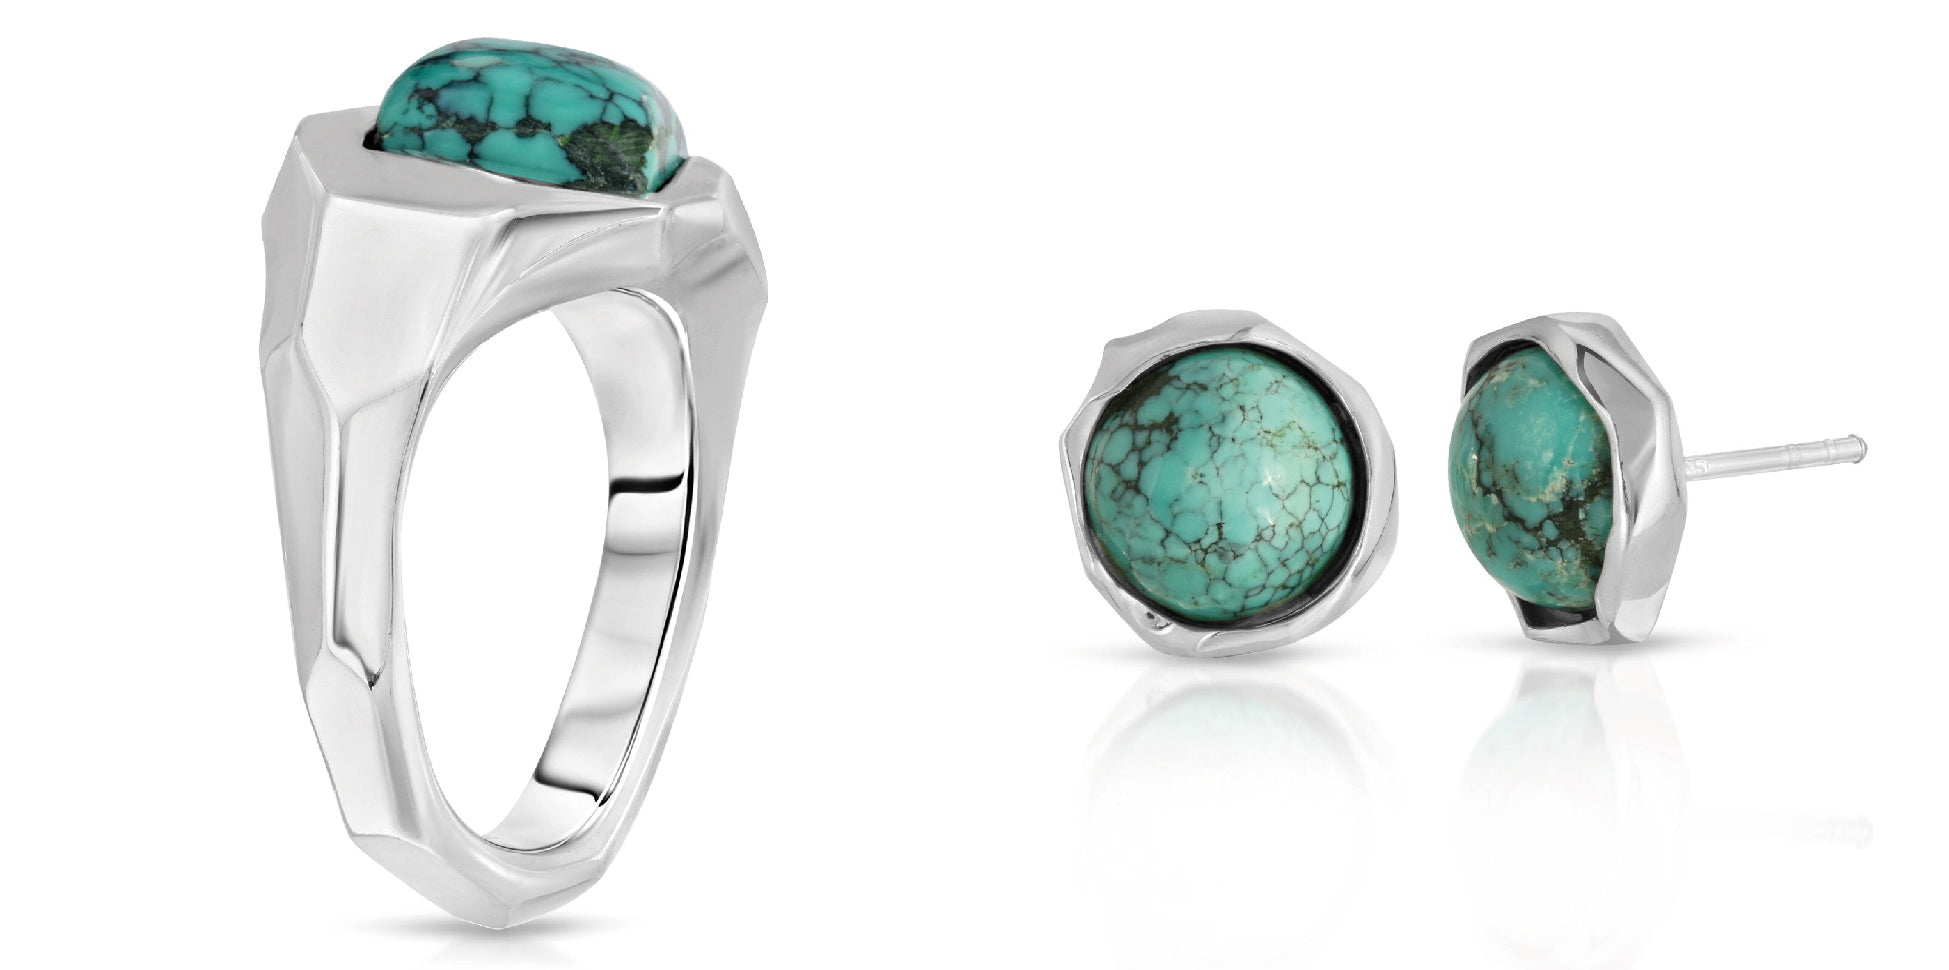 The W Brothers turquoise ring and earrings couple set bundle package set crafted in 925 sterling silver with natural AA Grade turquoise gemstones. Matching set round angled earrings in turquoise perfect for a complete outfit. Only available at www.thewbros.com